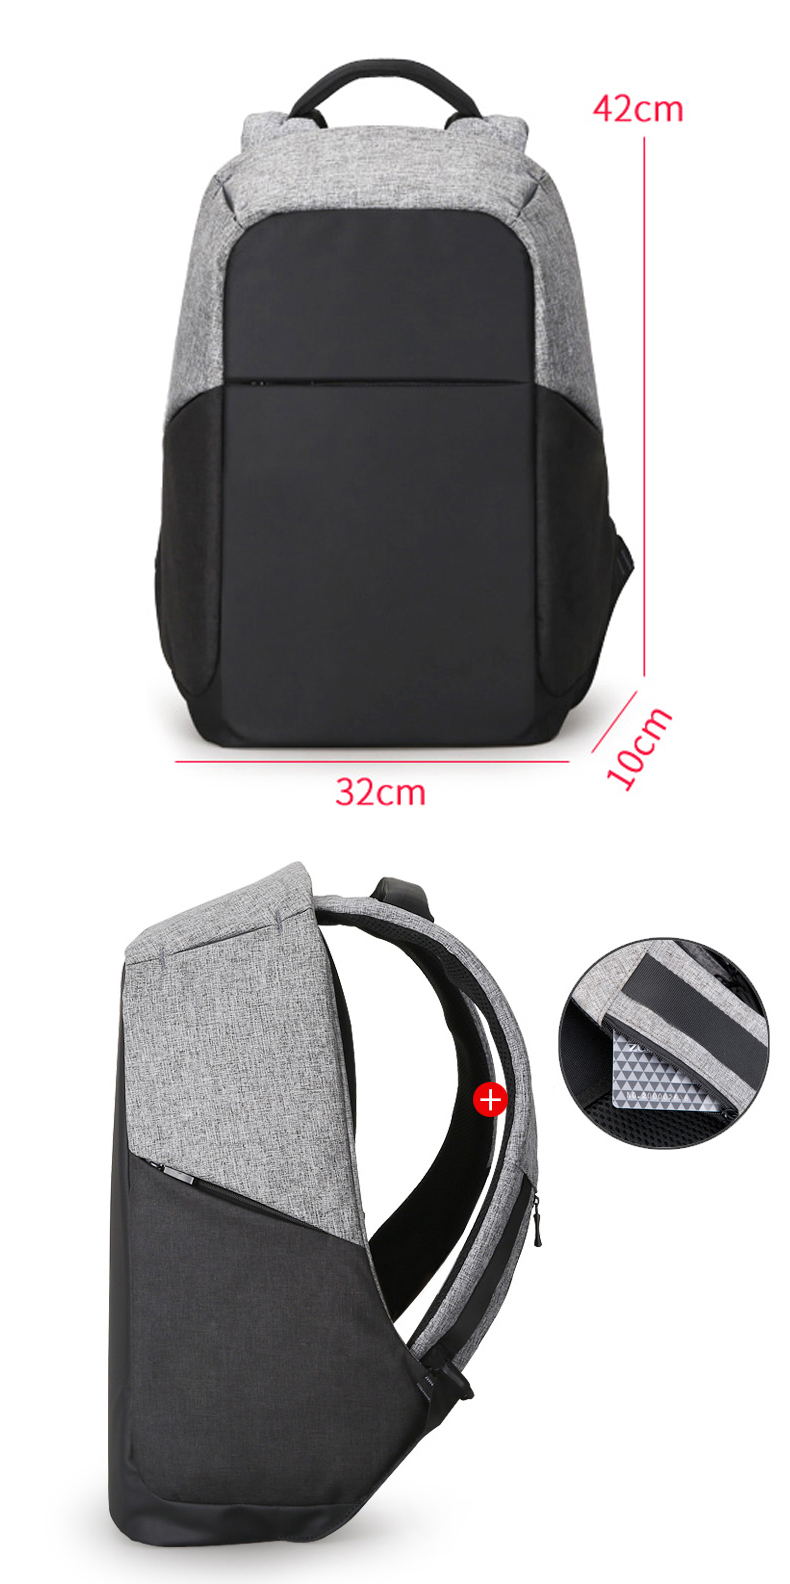 Water proof anti-theft anti thief security business smart laptop backpack rucksack bagpack back pack bag with USB Charging port